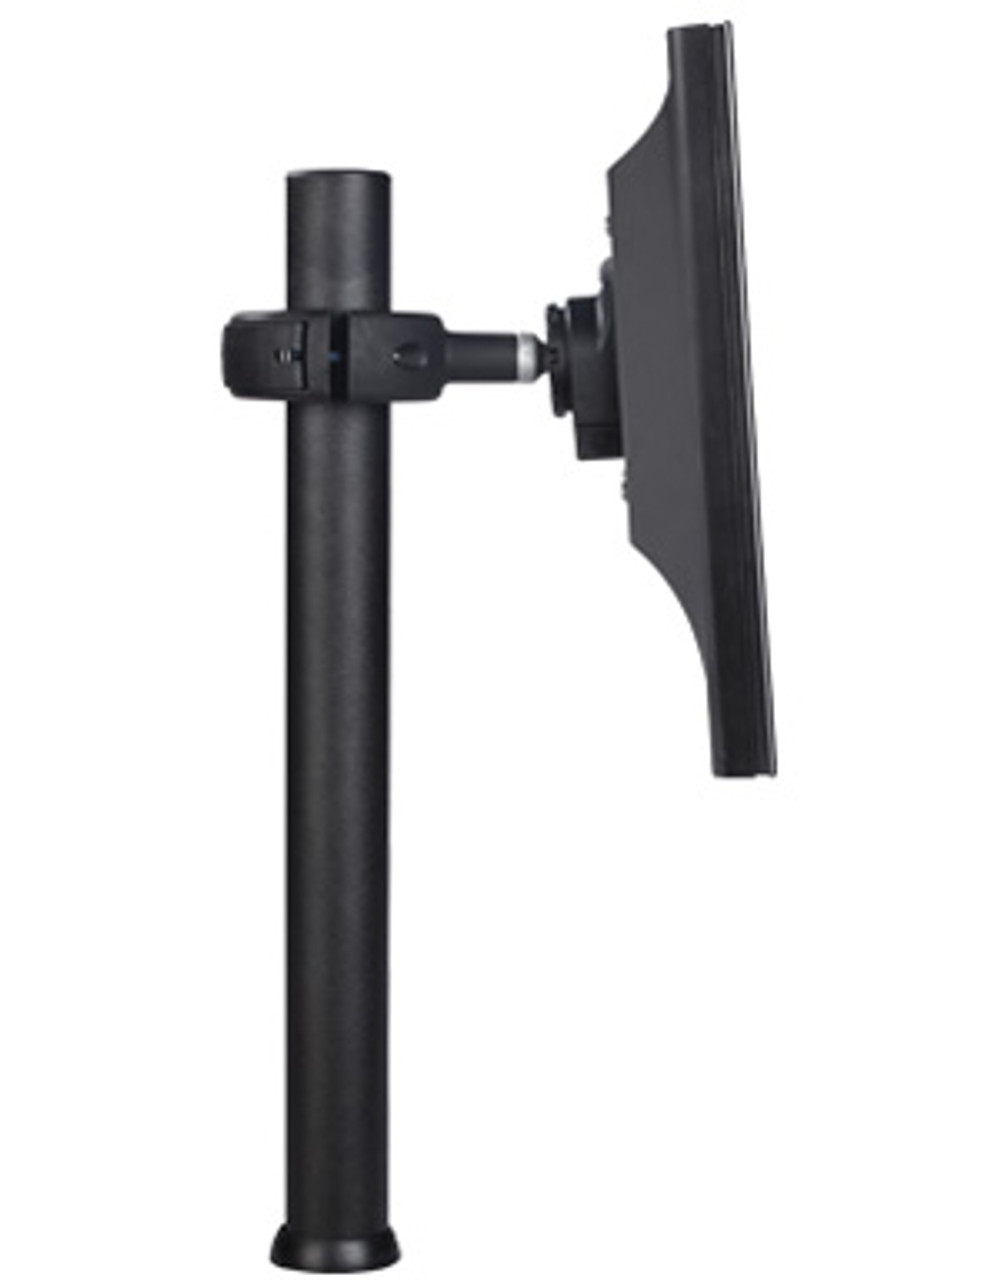 Product image for Atdec Spacedec Display Donut Pole 420mm Black | CX Computer Superstore